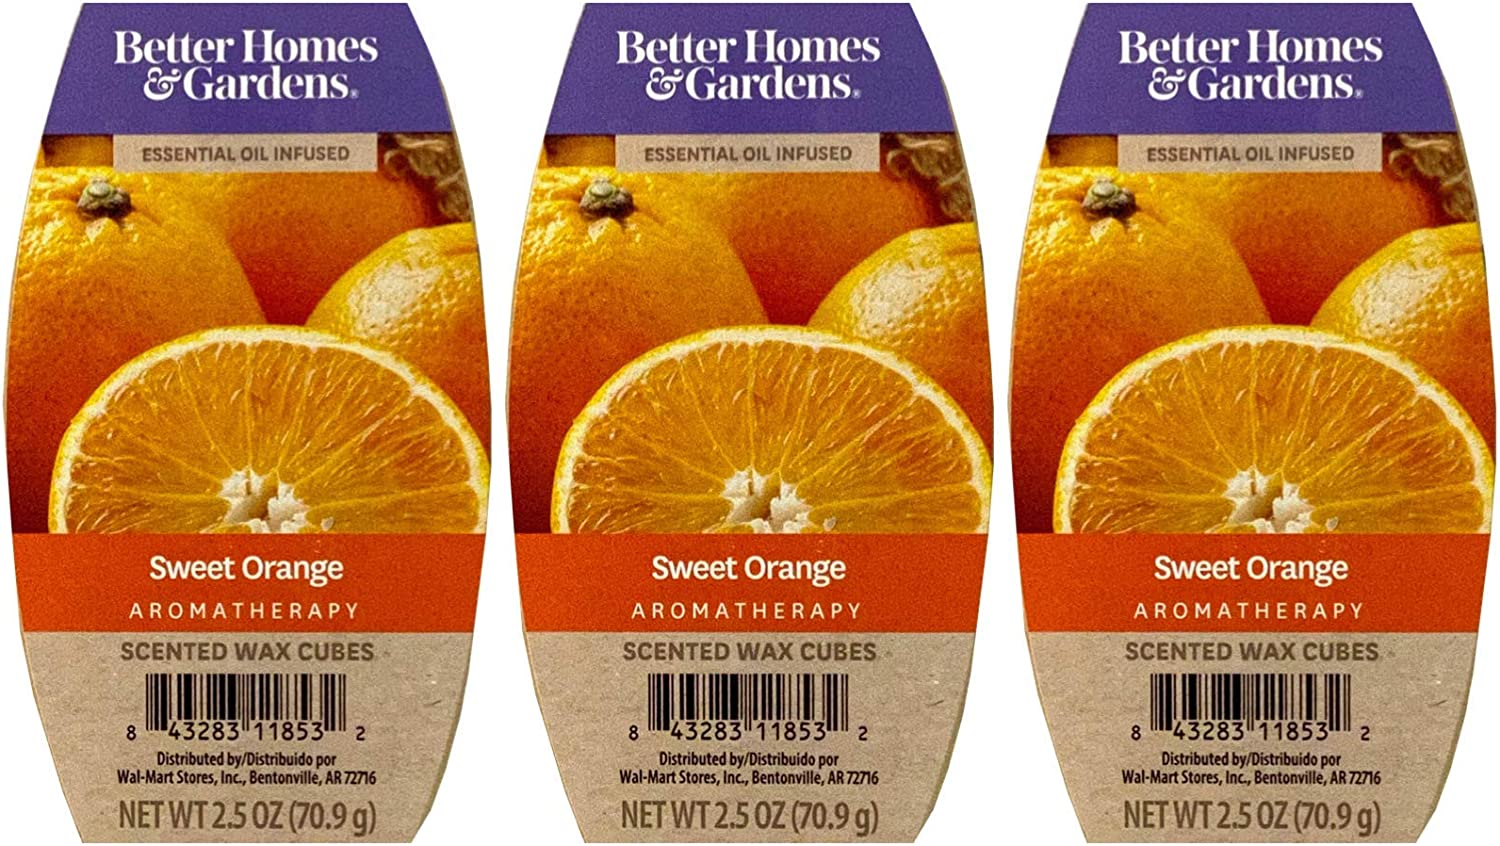 Better Homes and Gardens Sweet Orange Essential Oil Infused Wax Cubes - 3-Pack